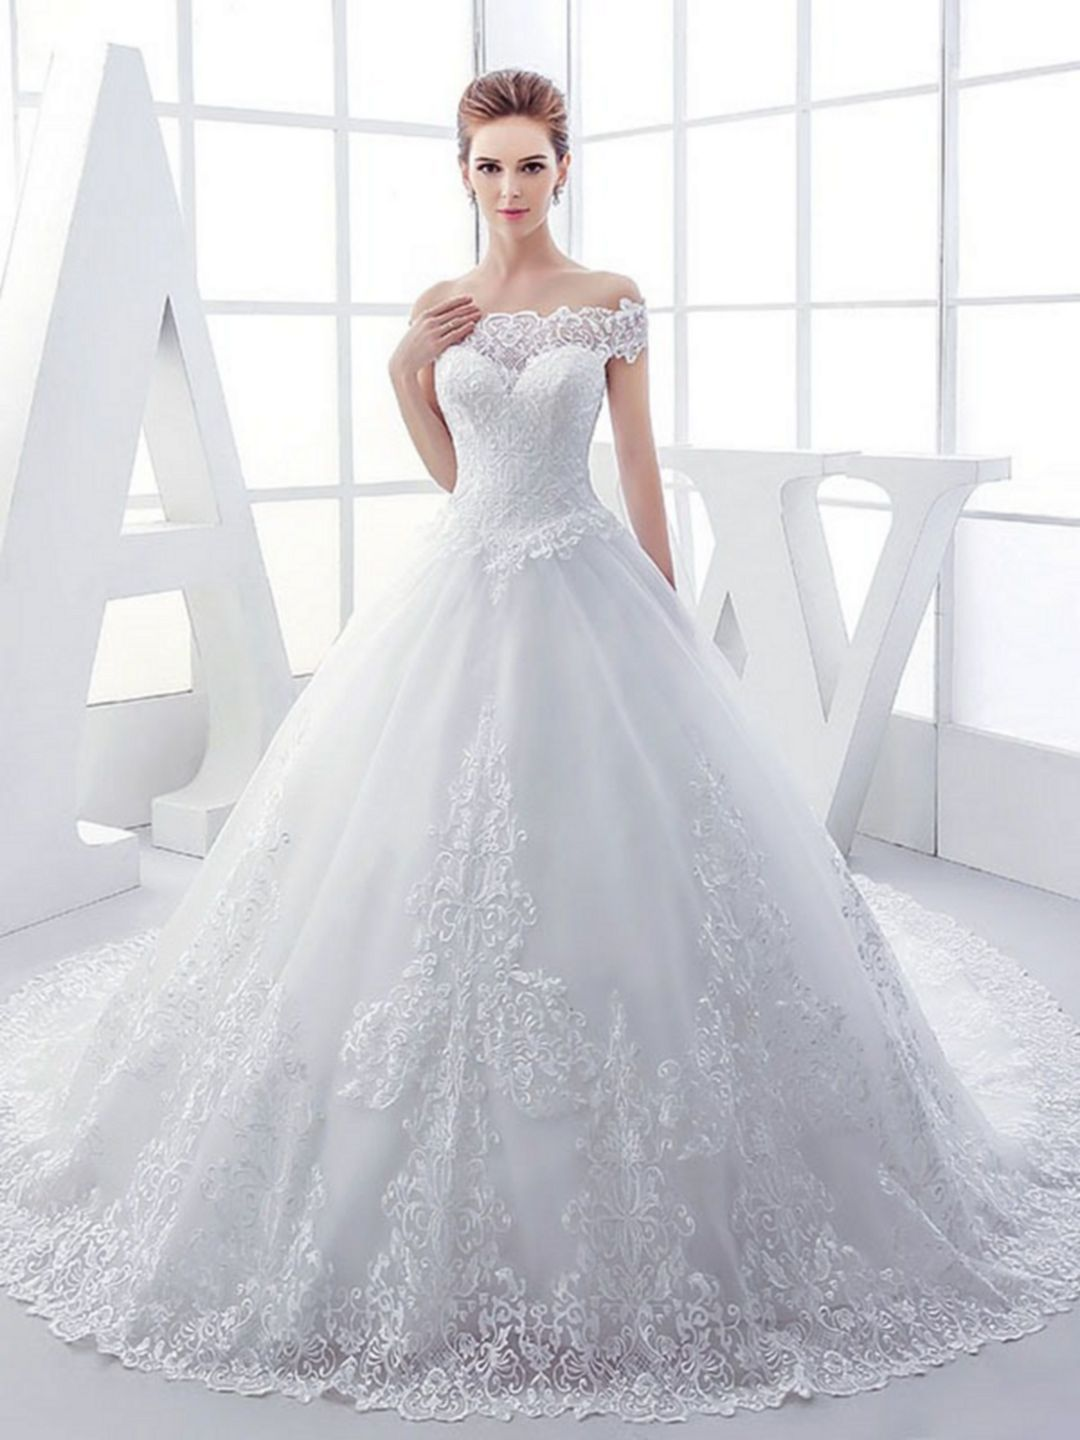 5502 Most Beautiful White Wedding Dress Ball Gown Ideas For The ...